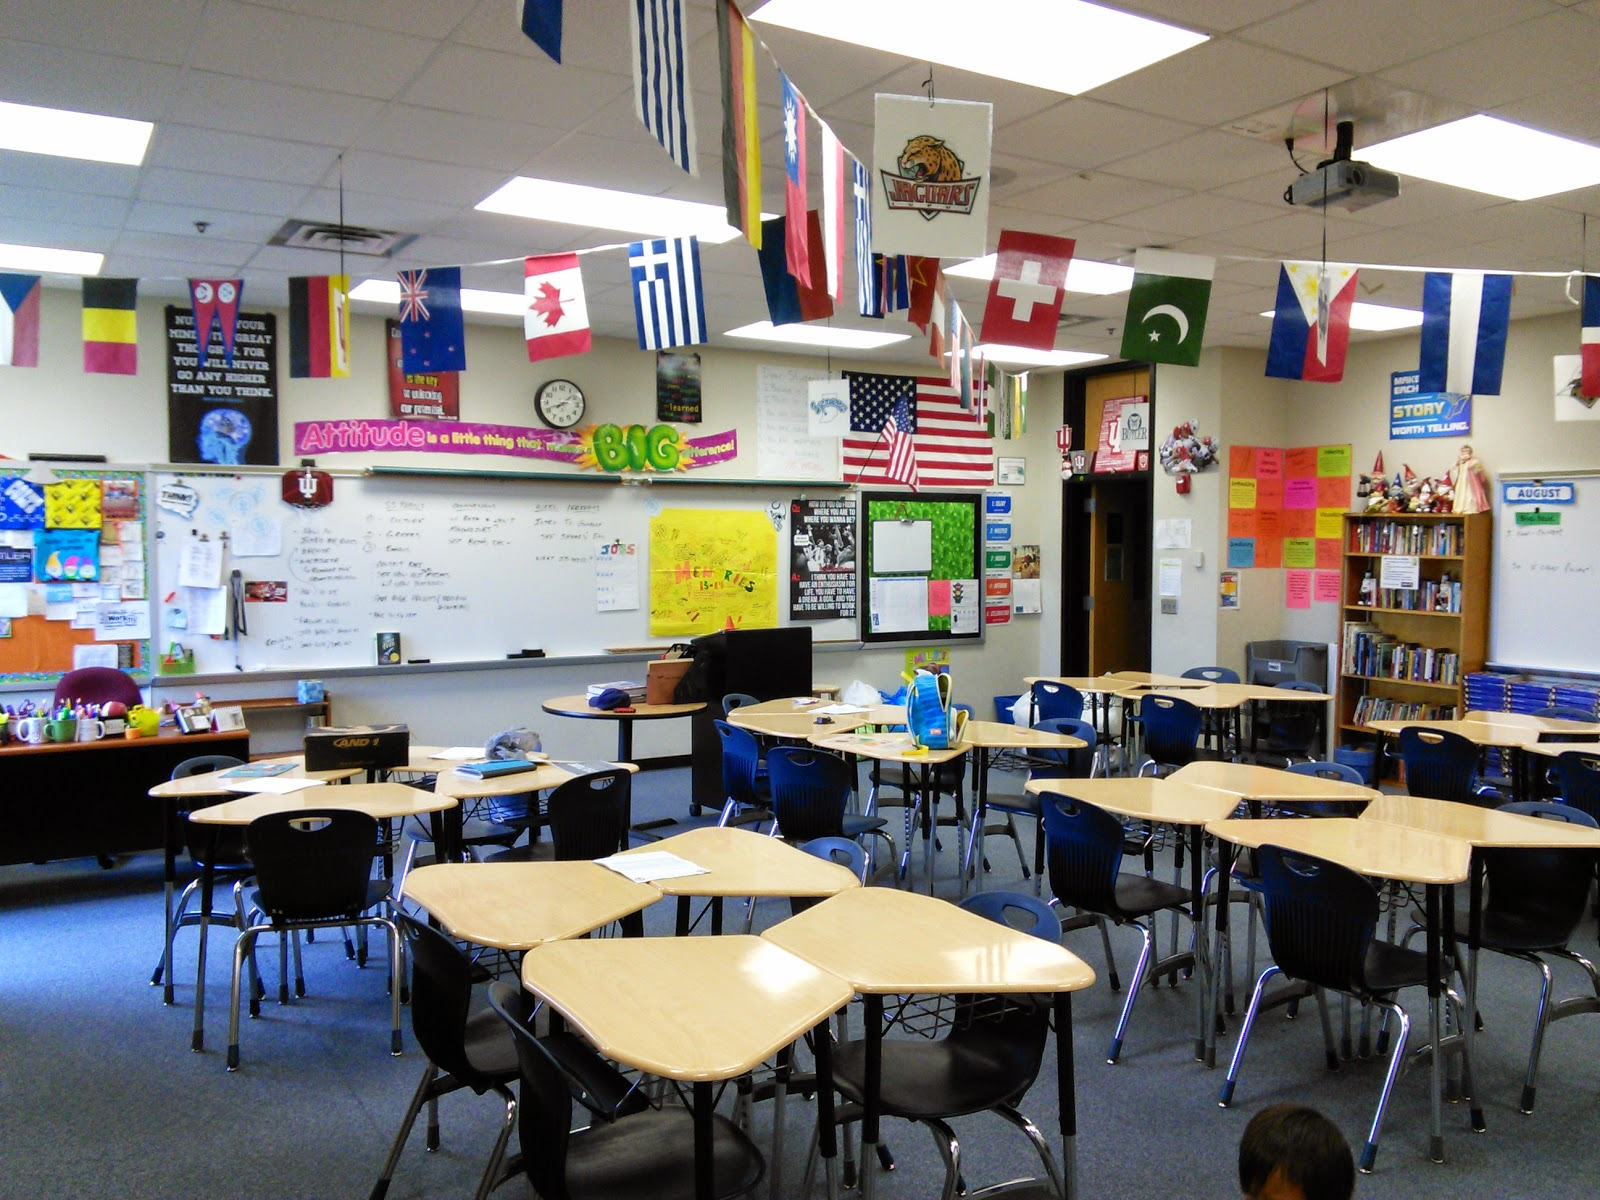 30 Day Blogging Challenge: Day 5: Our Classroom